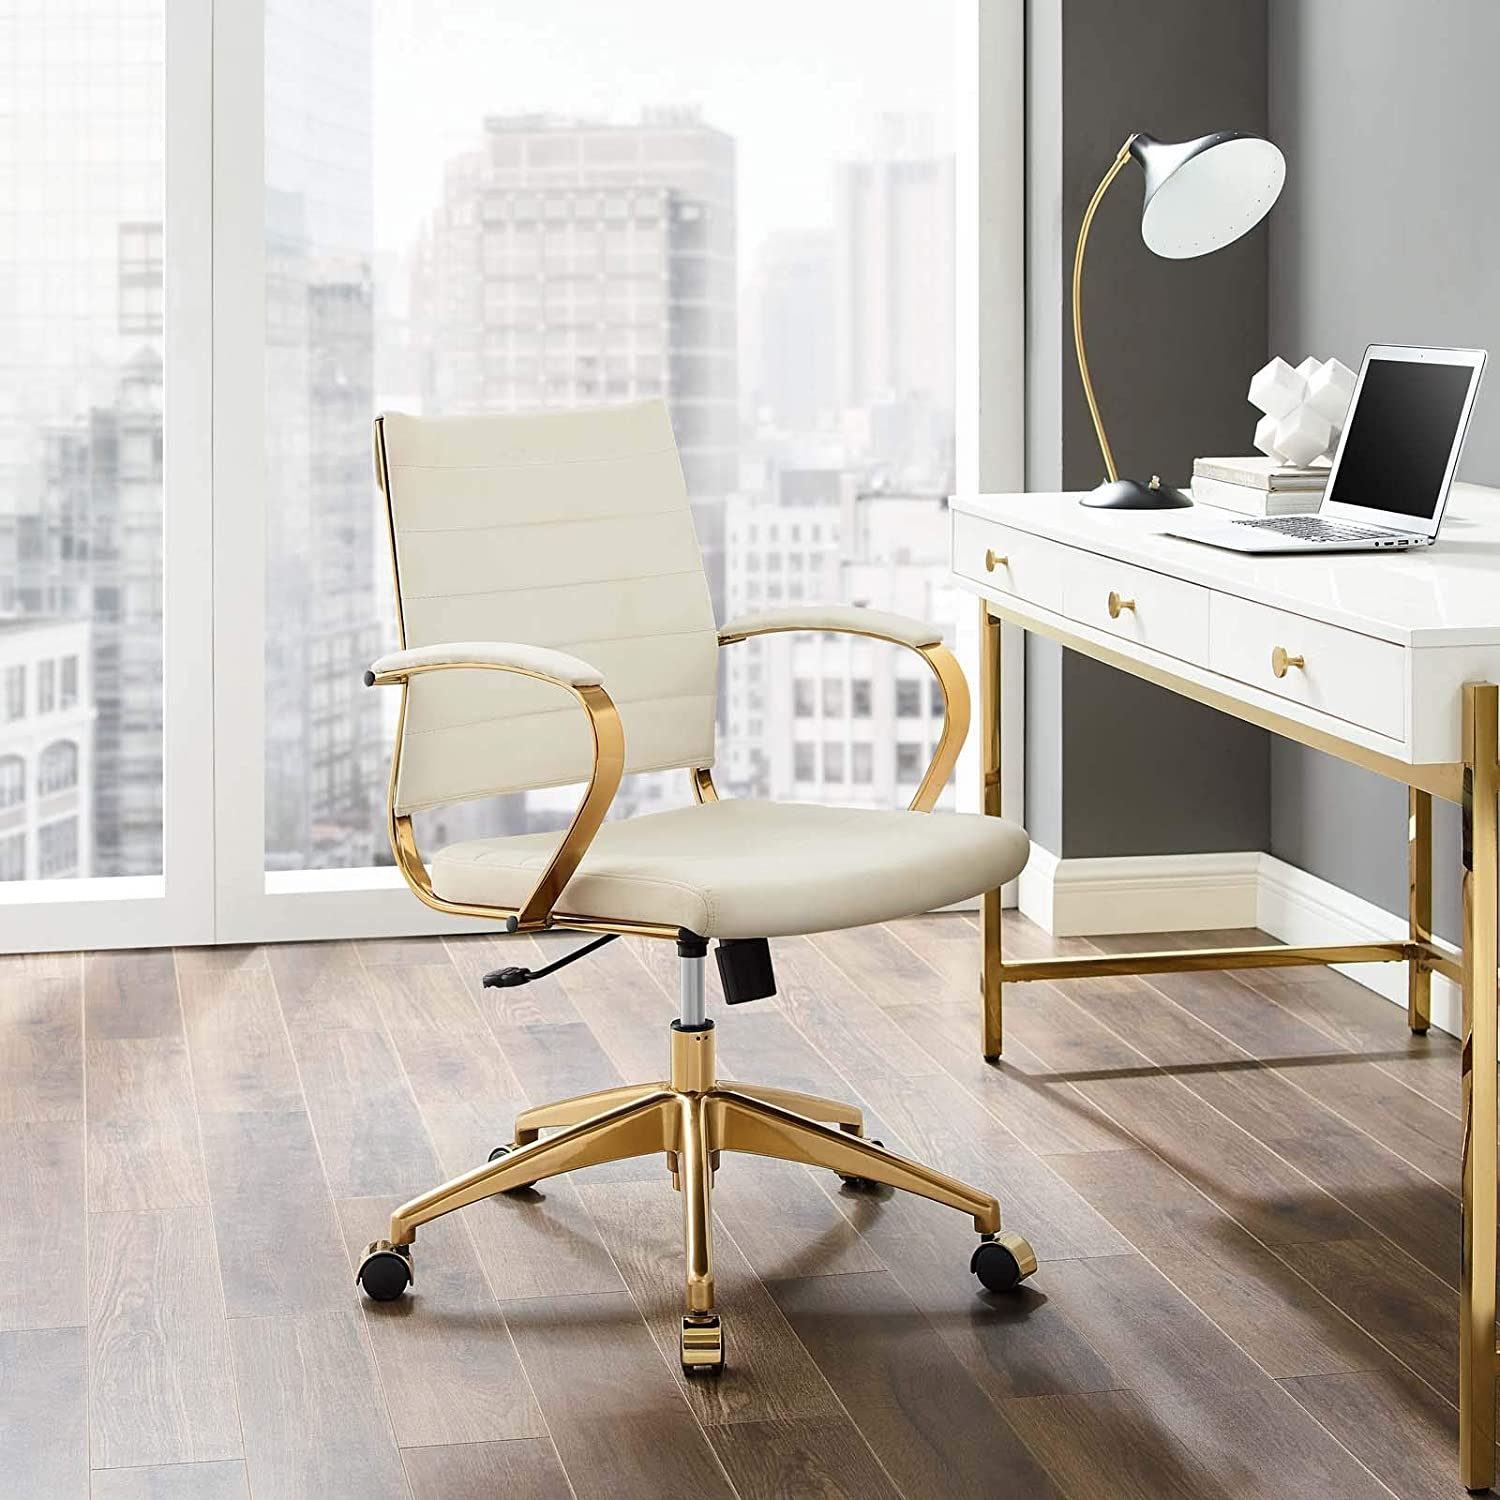 Amazon Com Modway Jive Ribbed Performance Velvet Mid Back Computer Desk Swivel Office Chair In Ivory Furniture Decor